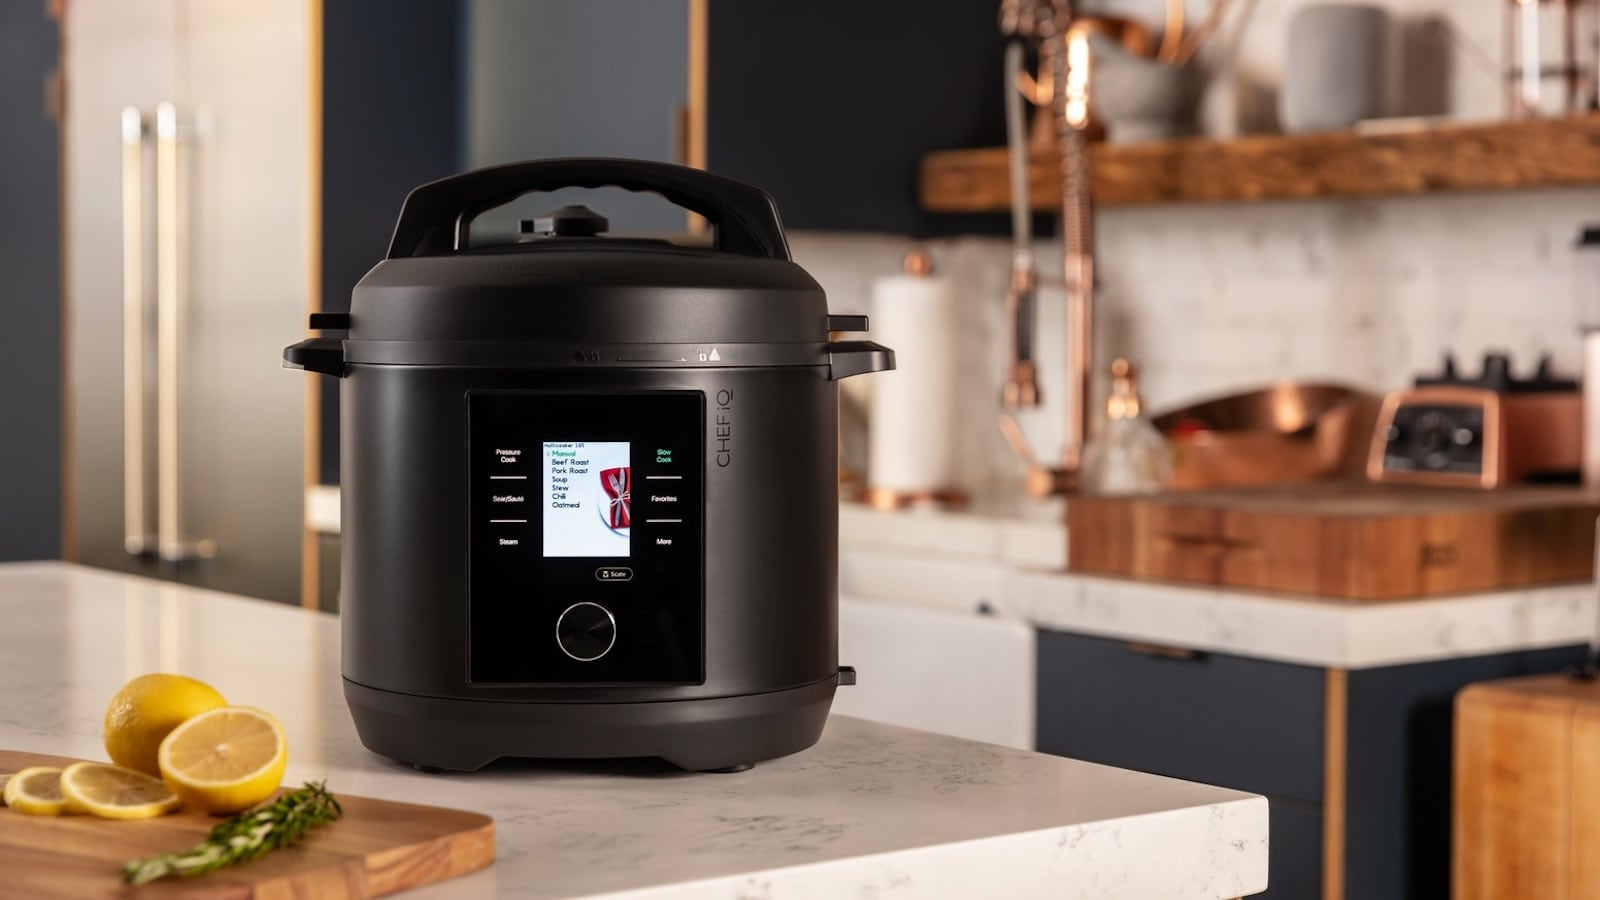 CHEF iQ Smart Cooker Multifunctional Cooking Device